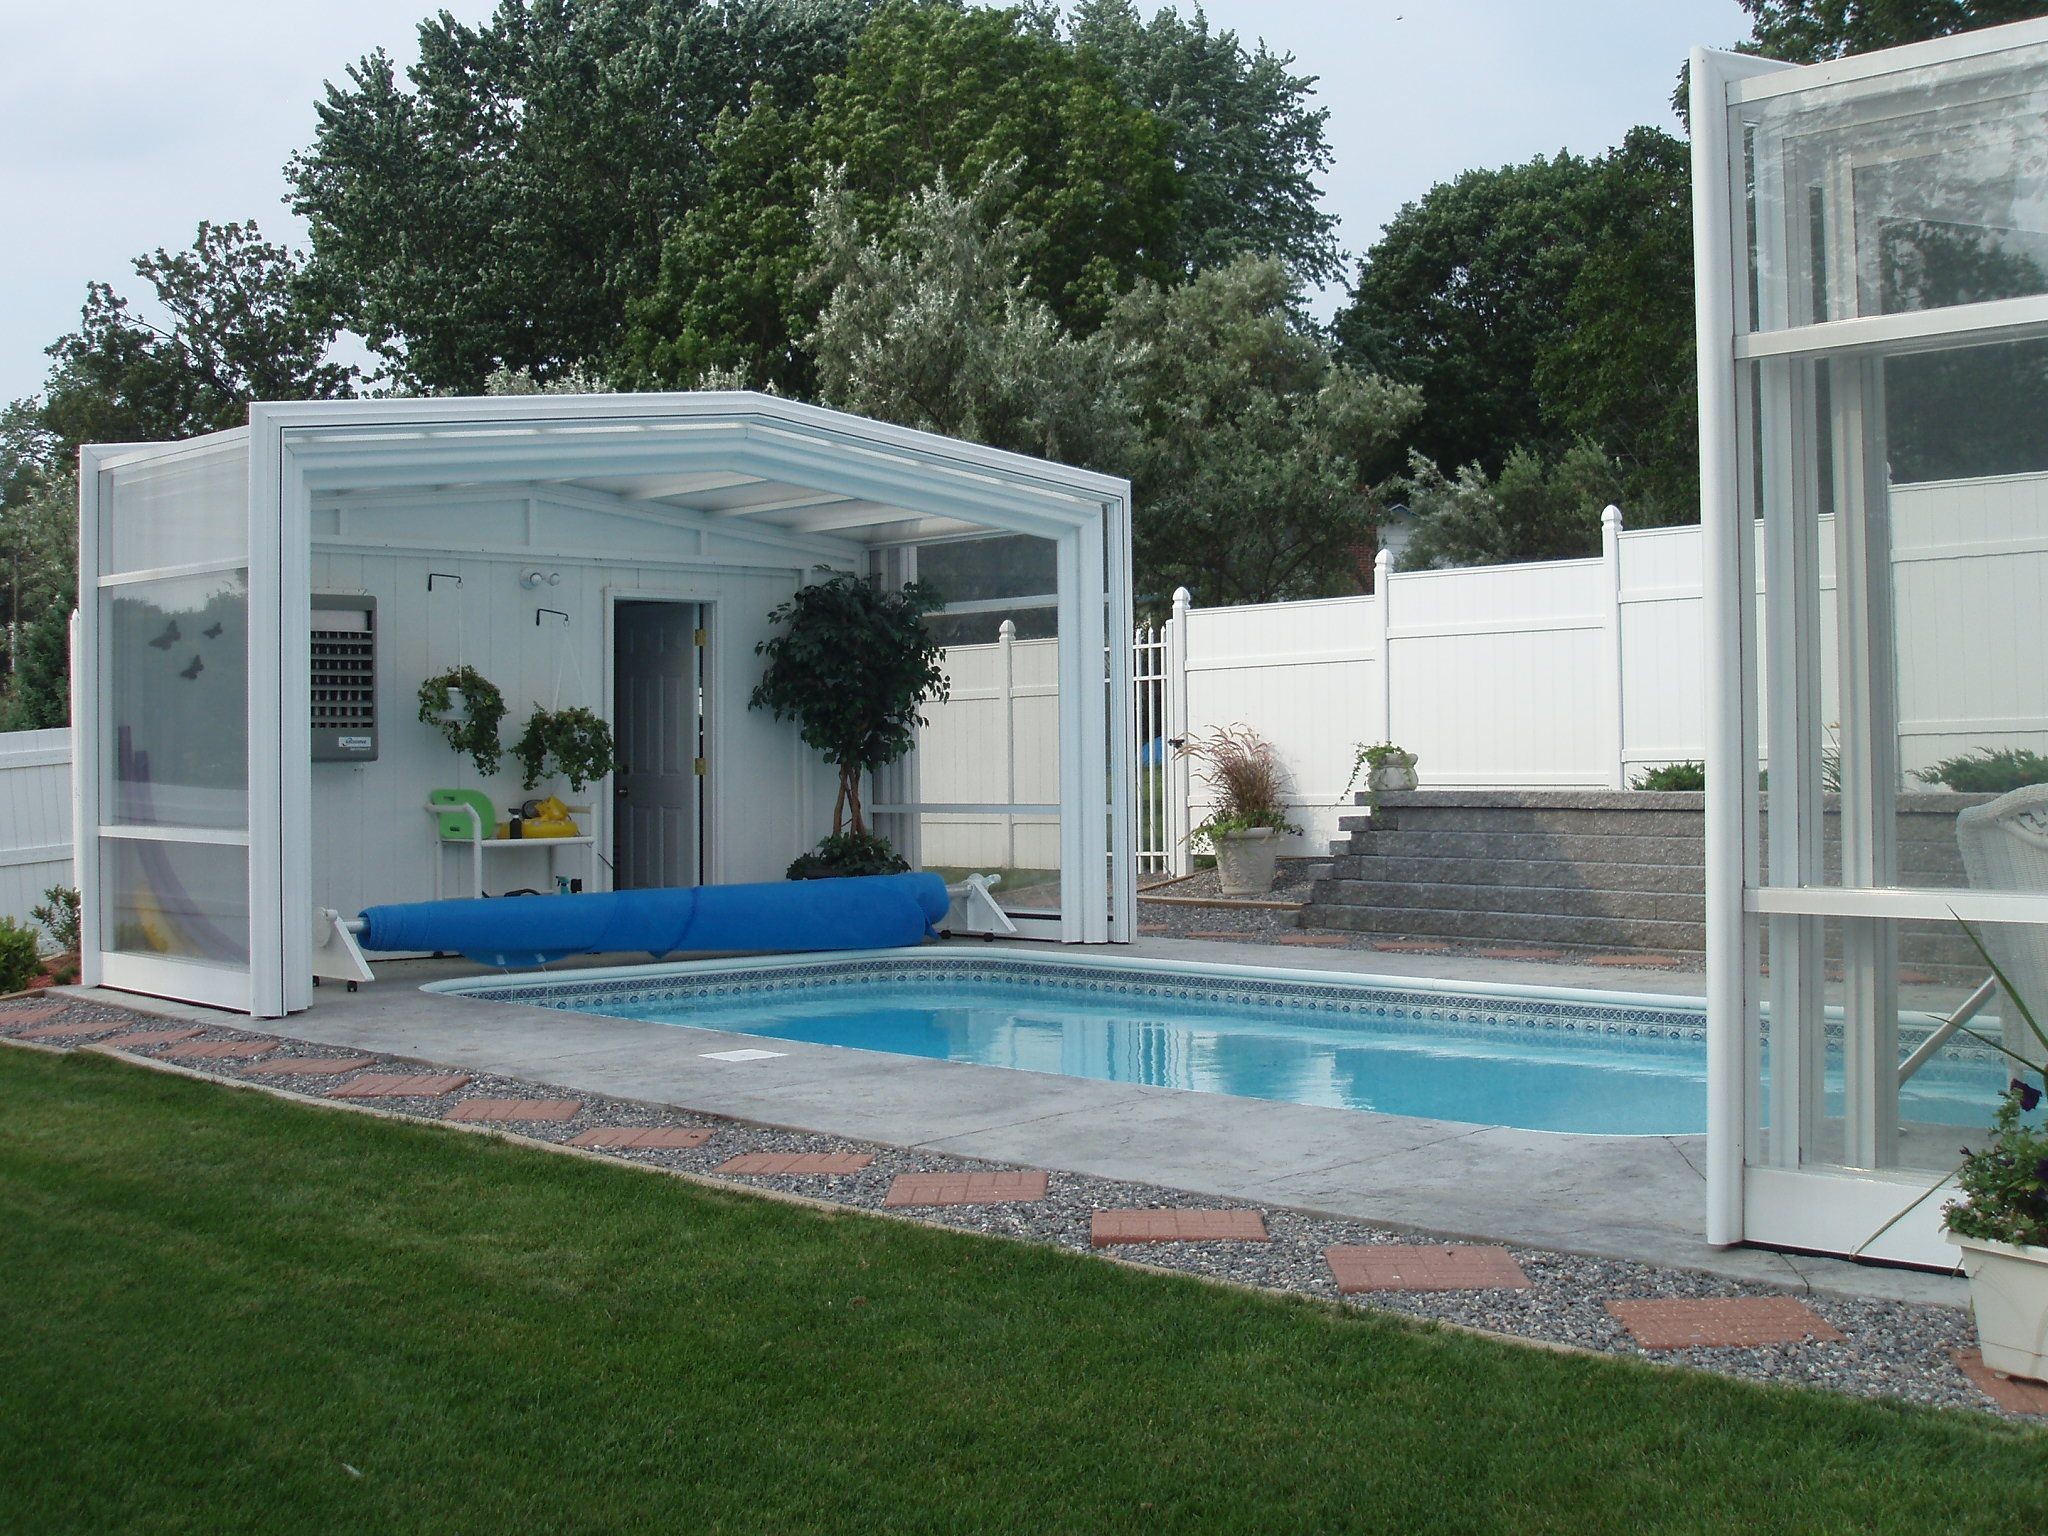 Year Round Pool Enclosures Also Make His Yard Look Great